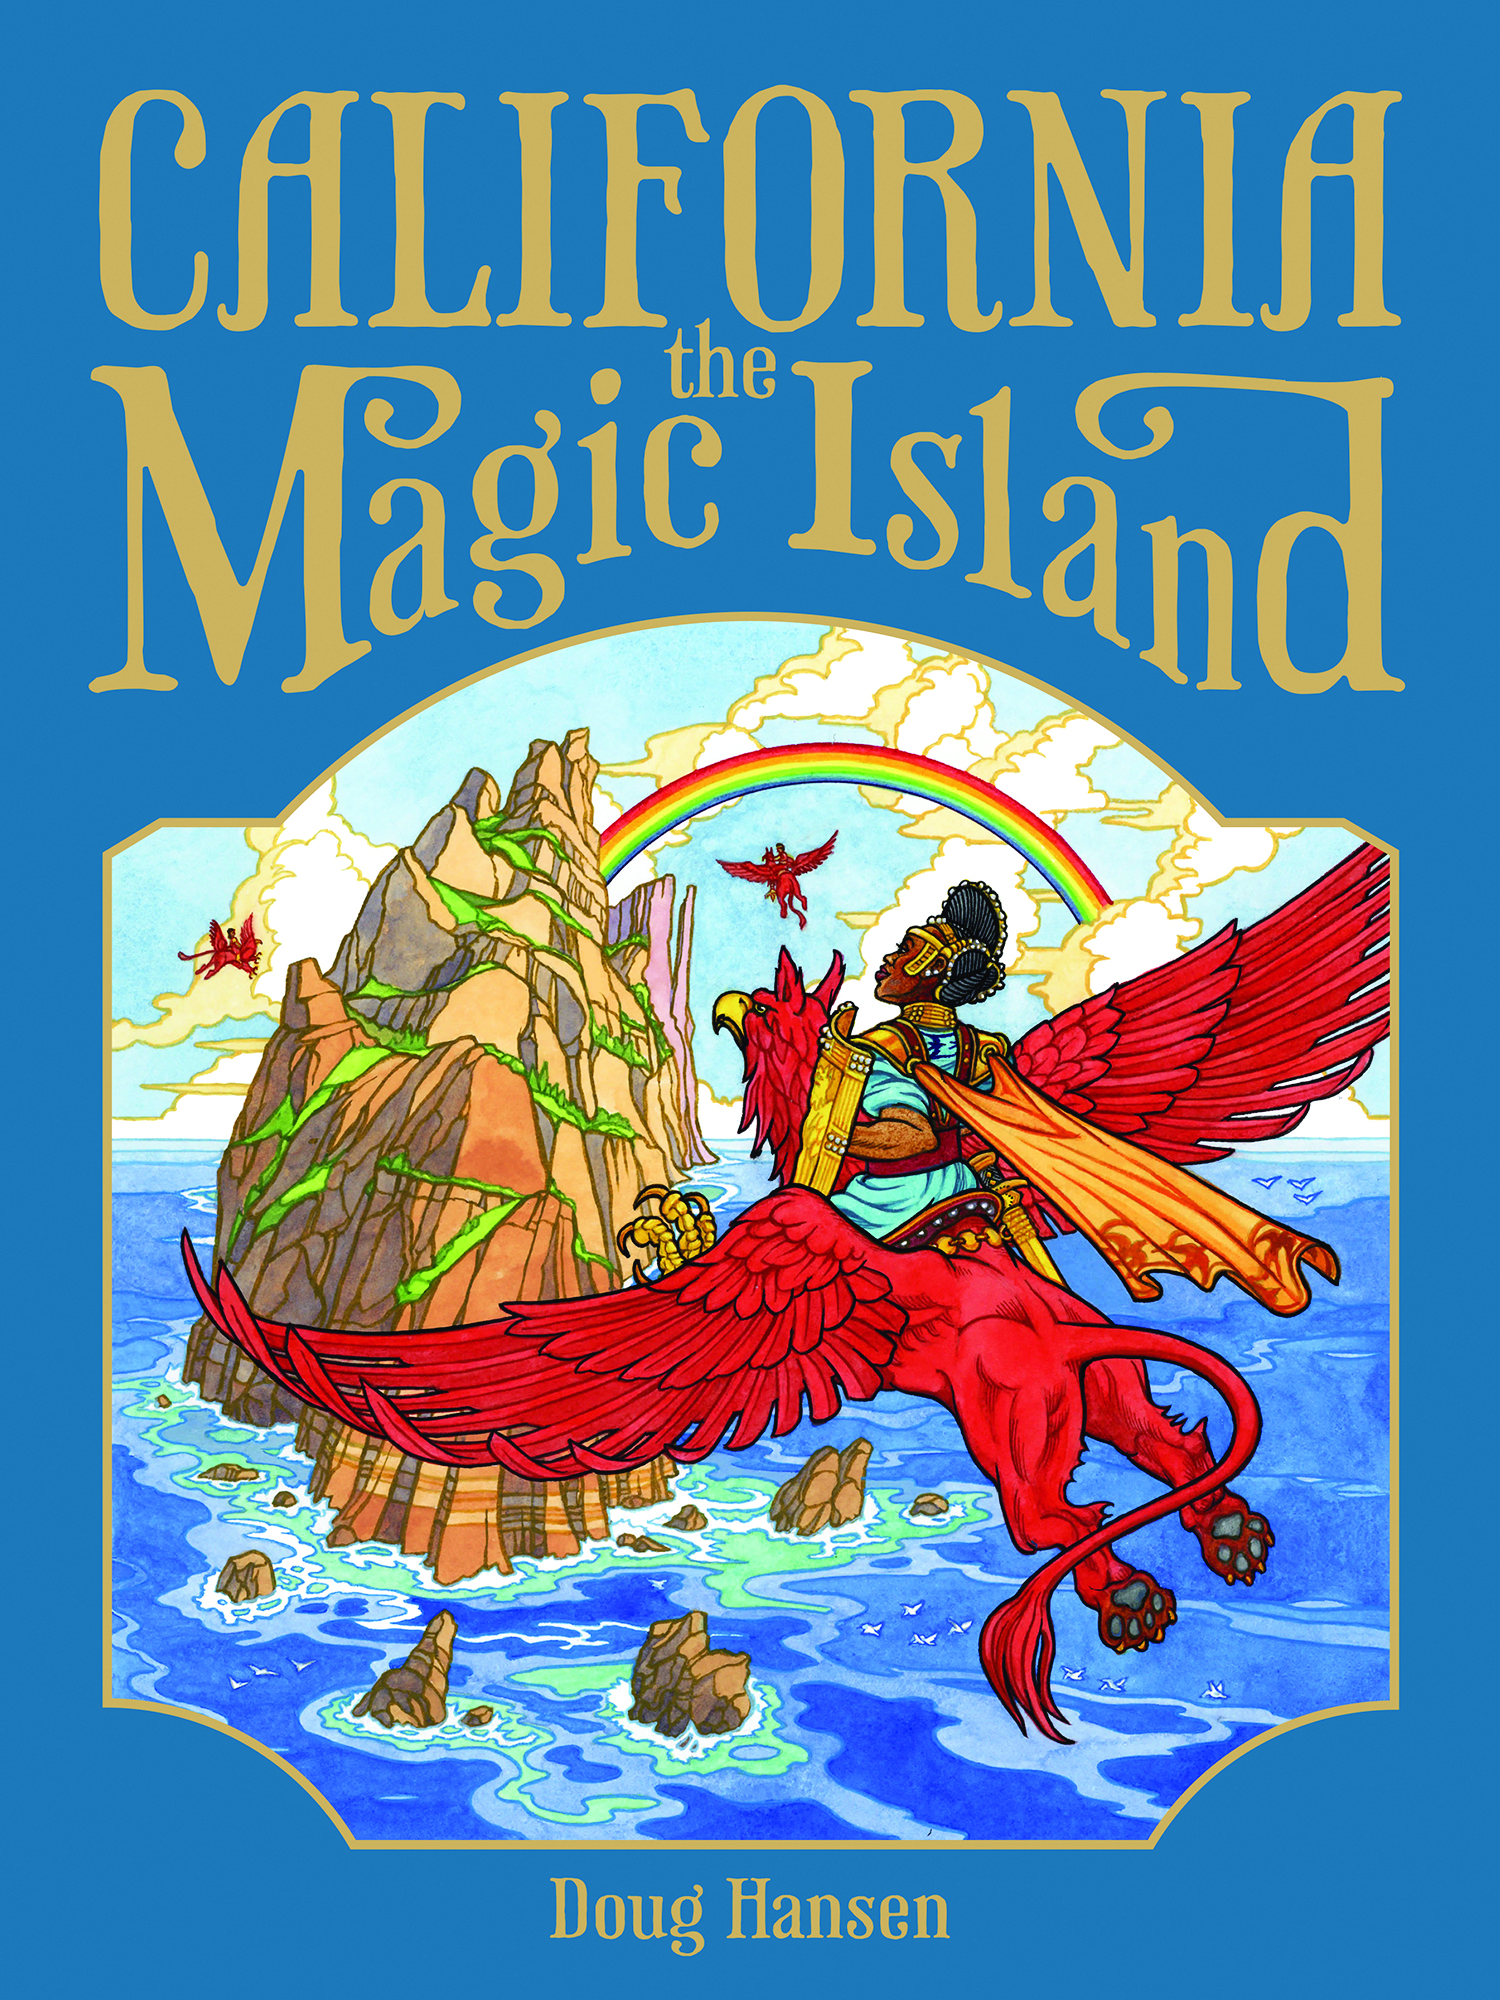 California the Magic Island Cover courtesy of Doug Hansen